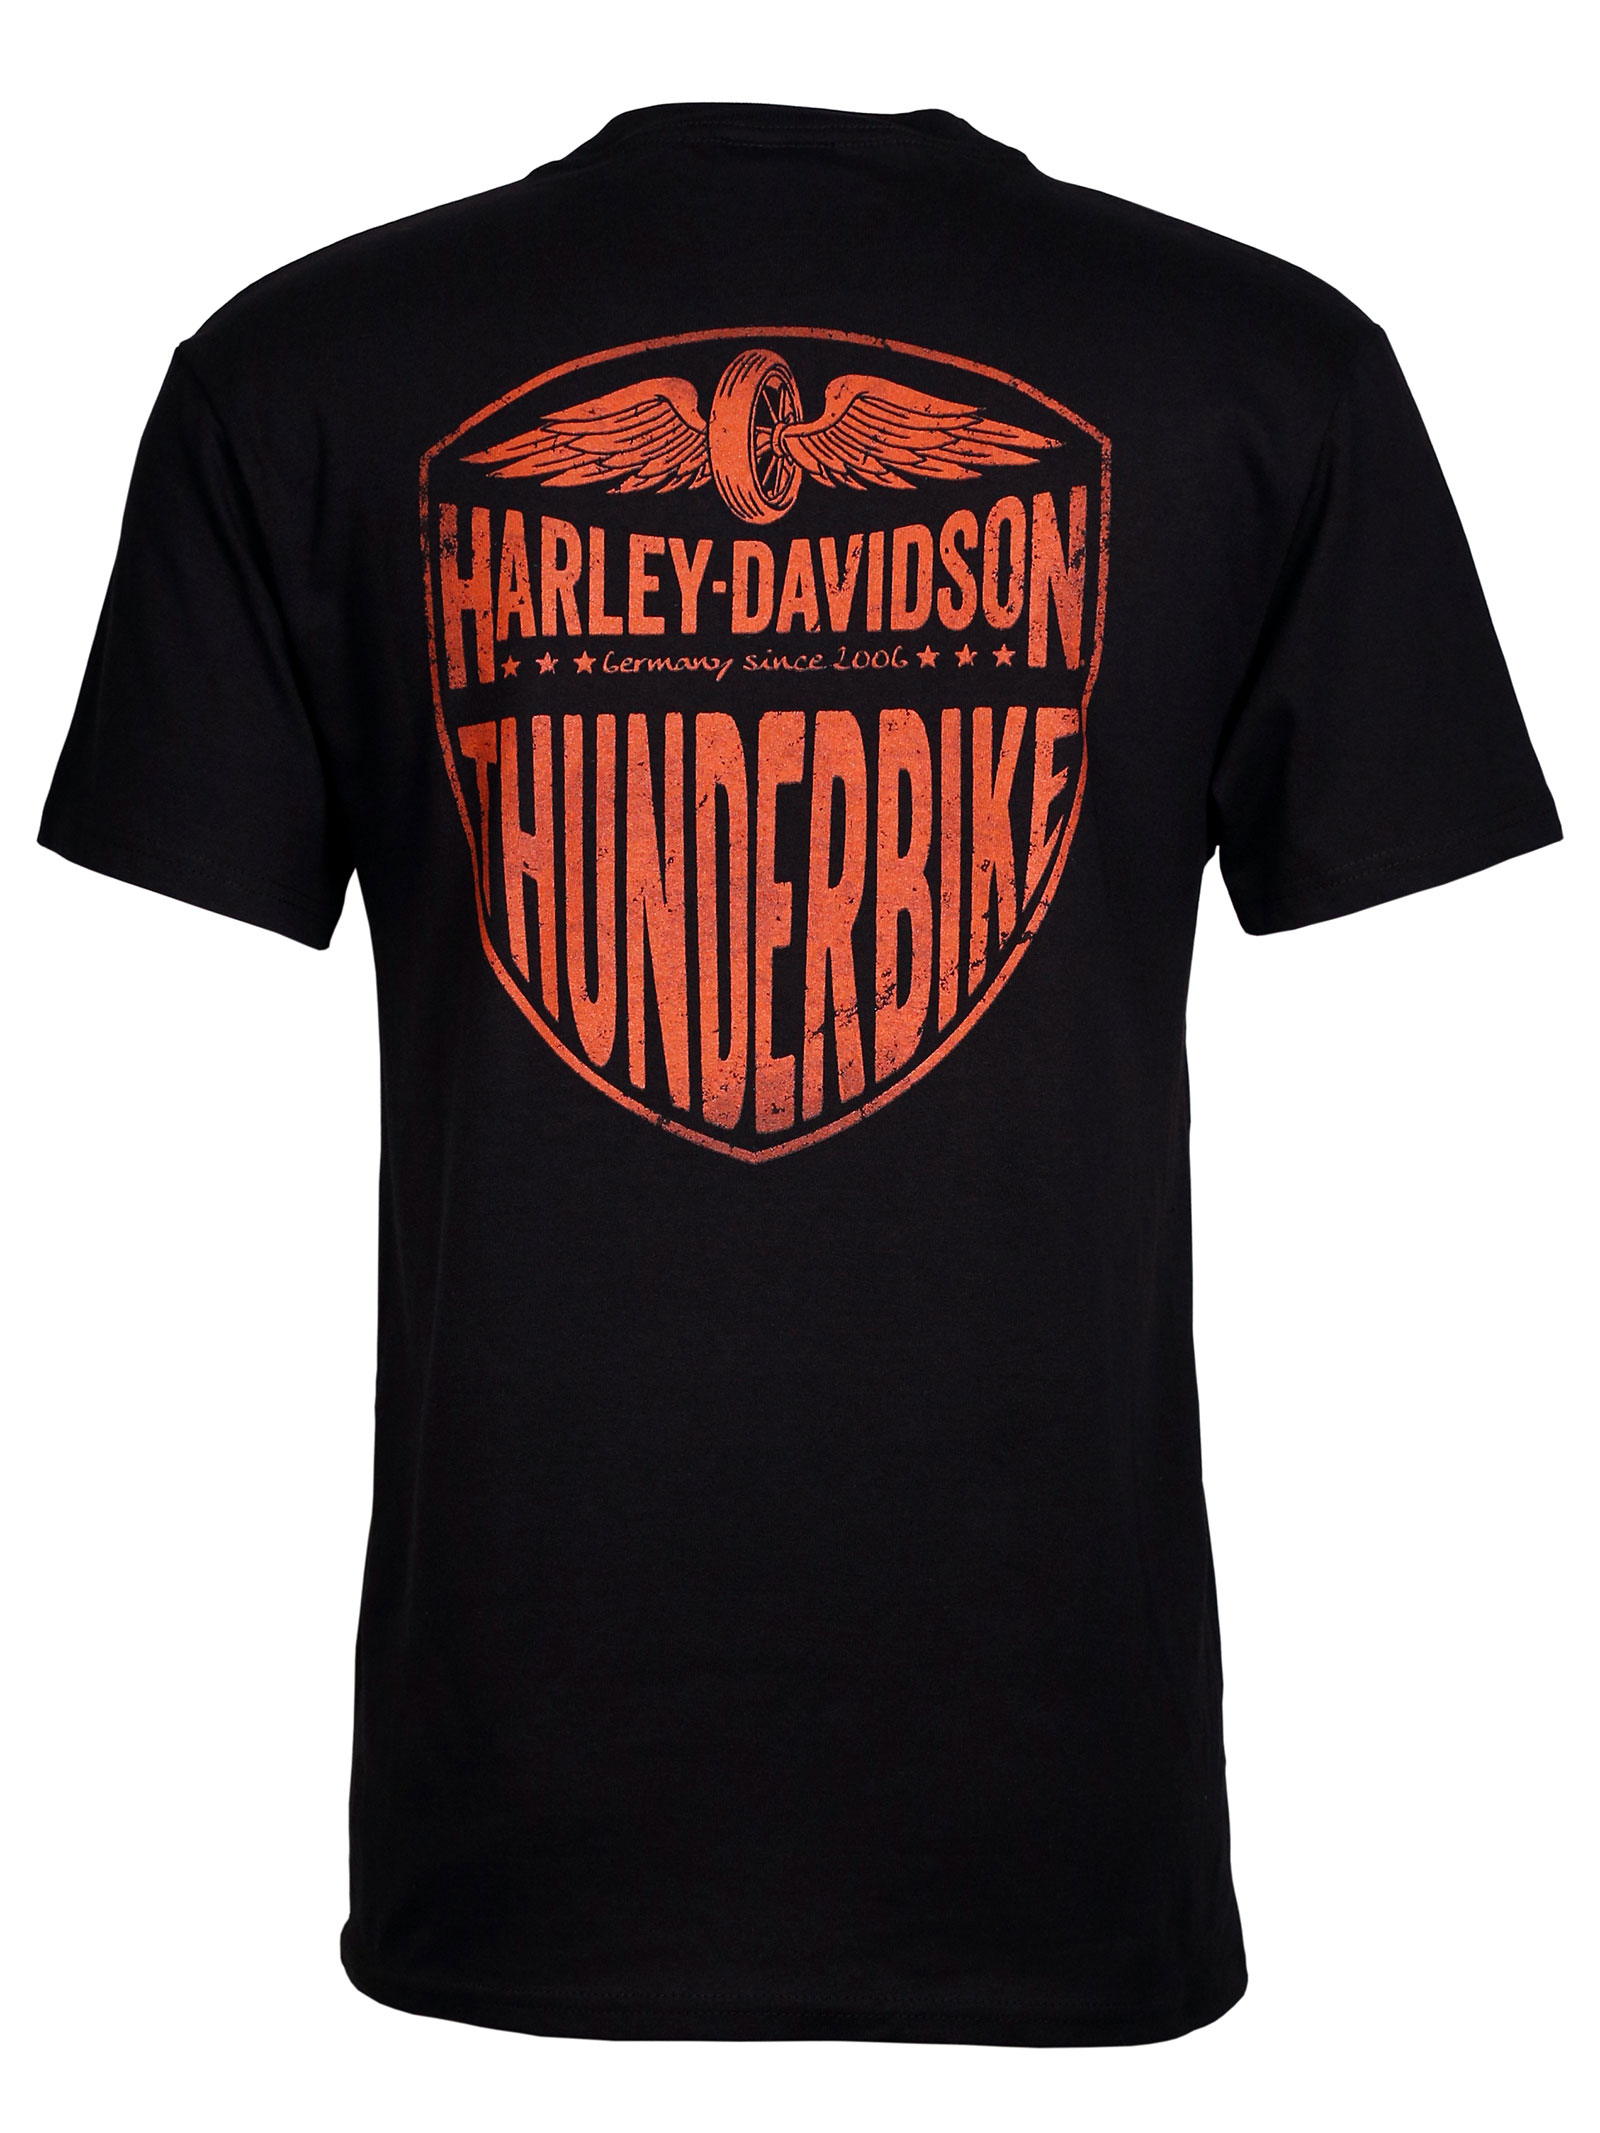 harley davidson t shirt adverse thirst im thunderbike shop. Black Bedroom Furniture Sets. Home Design Ideas